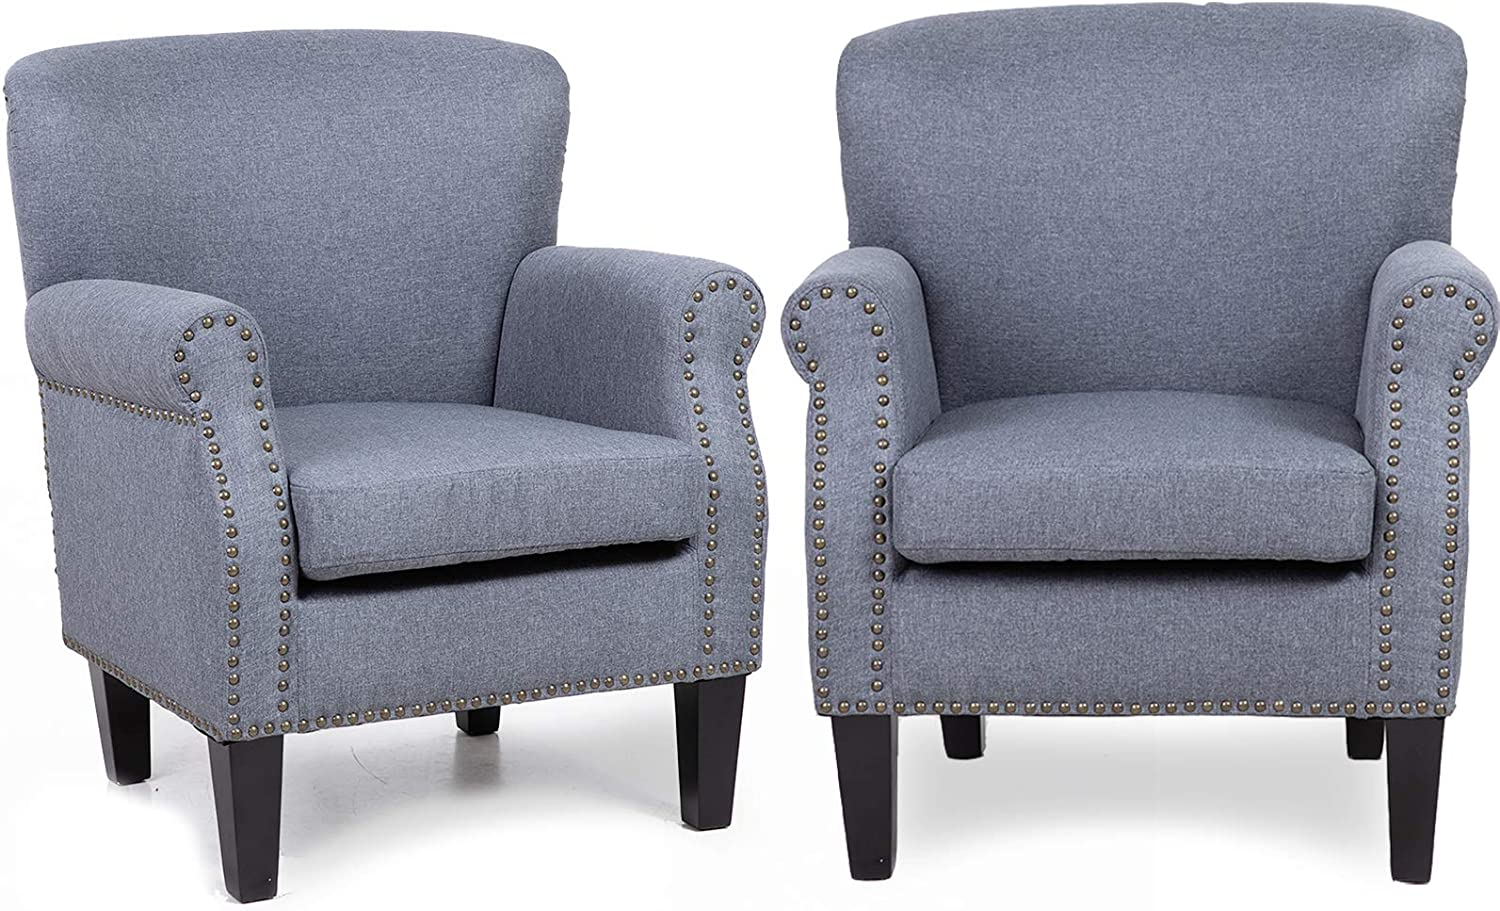 Modern Accent Chair Arm Chair, Lovinouse Mid Century Comfy Upholstered Single Sofa Furniture for Bedroom Living Room, Office, Grey (2 PC)